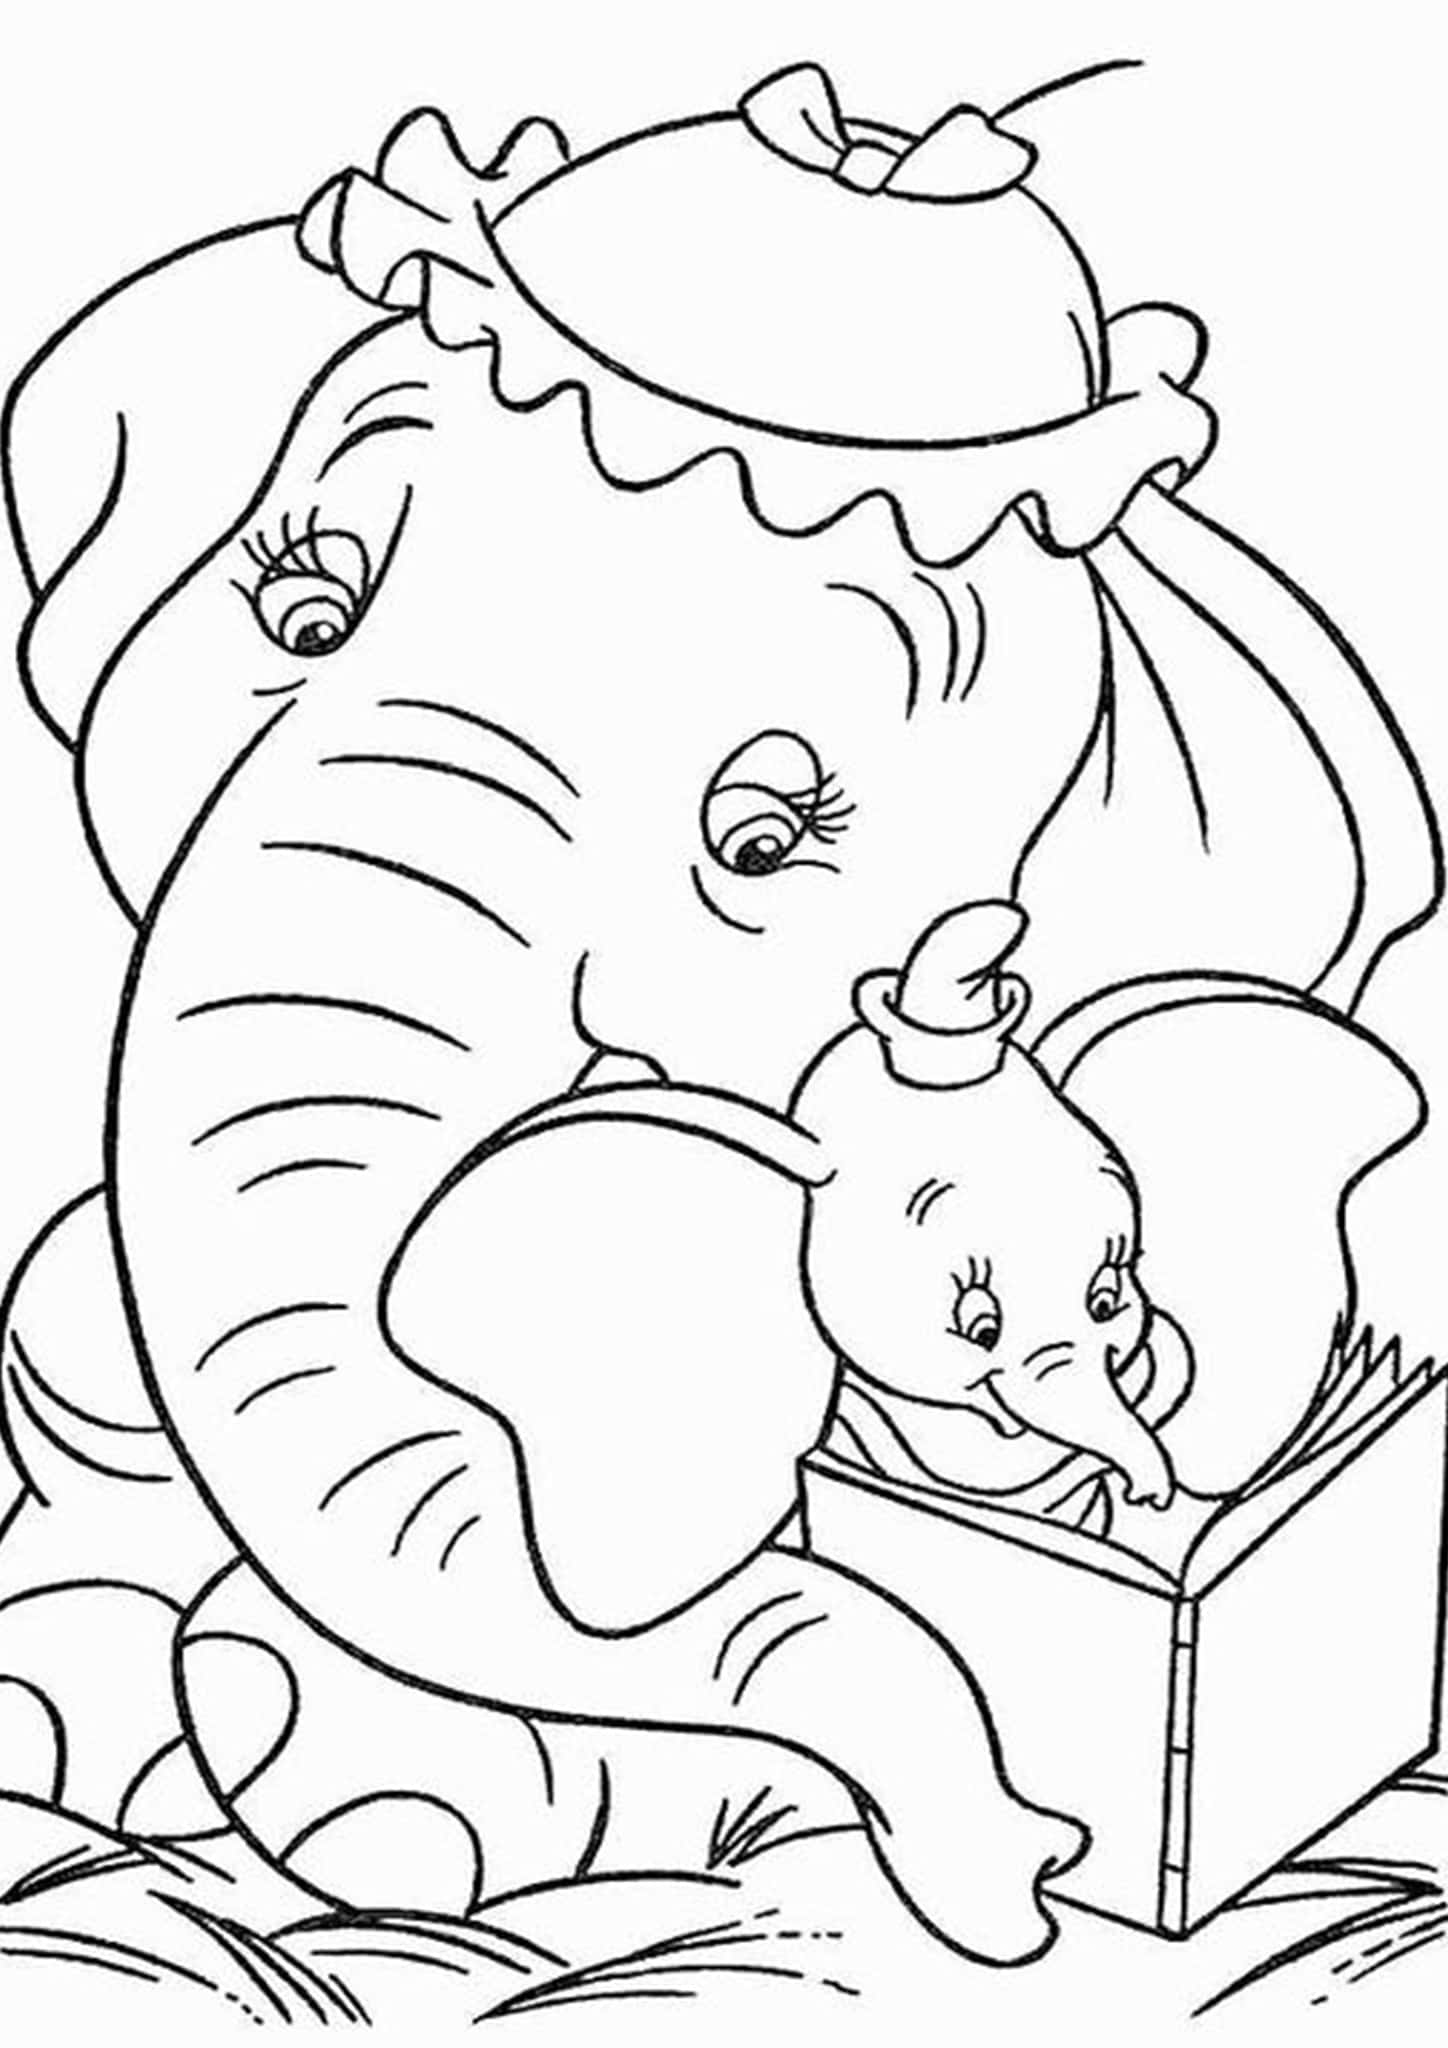 One Elephant Worksheet Printable Worksheets And Activities For Teachers Parents Tutors And Homeschool Families